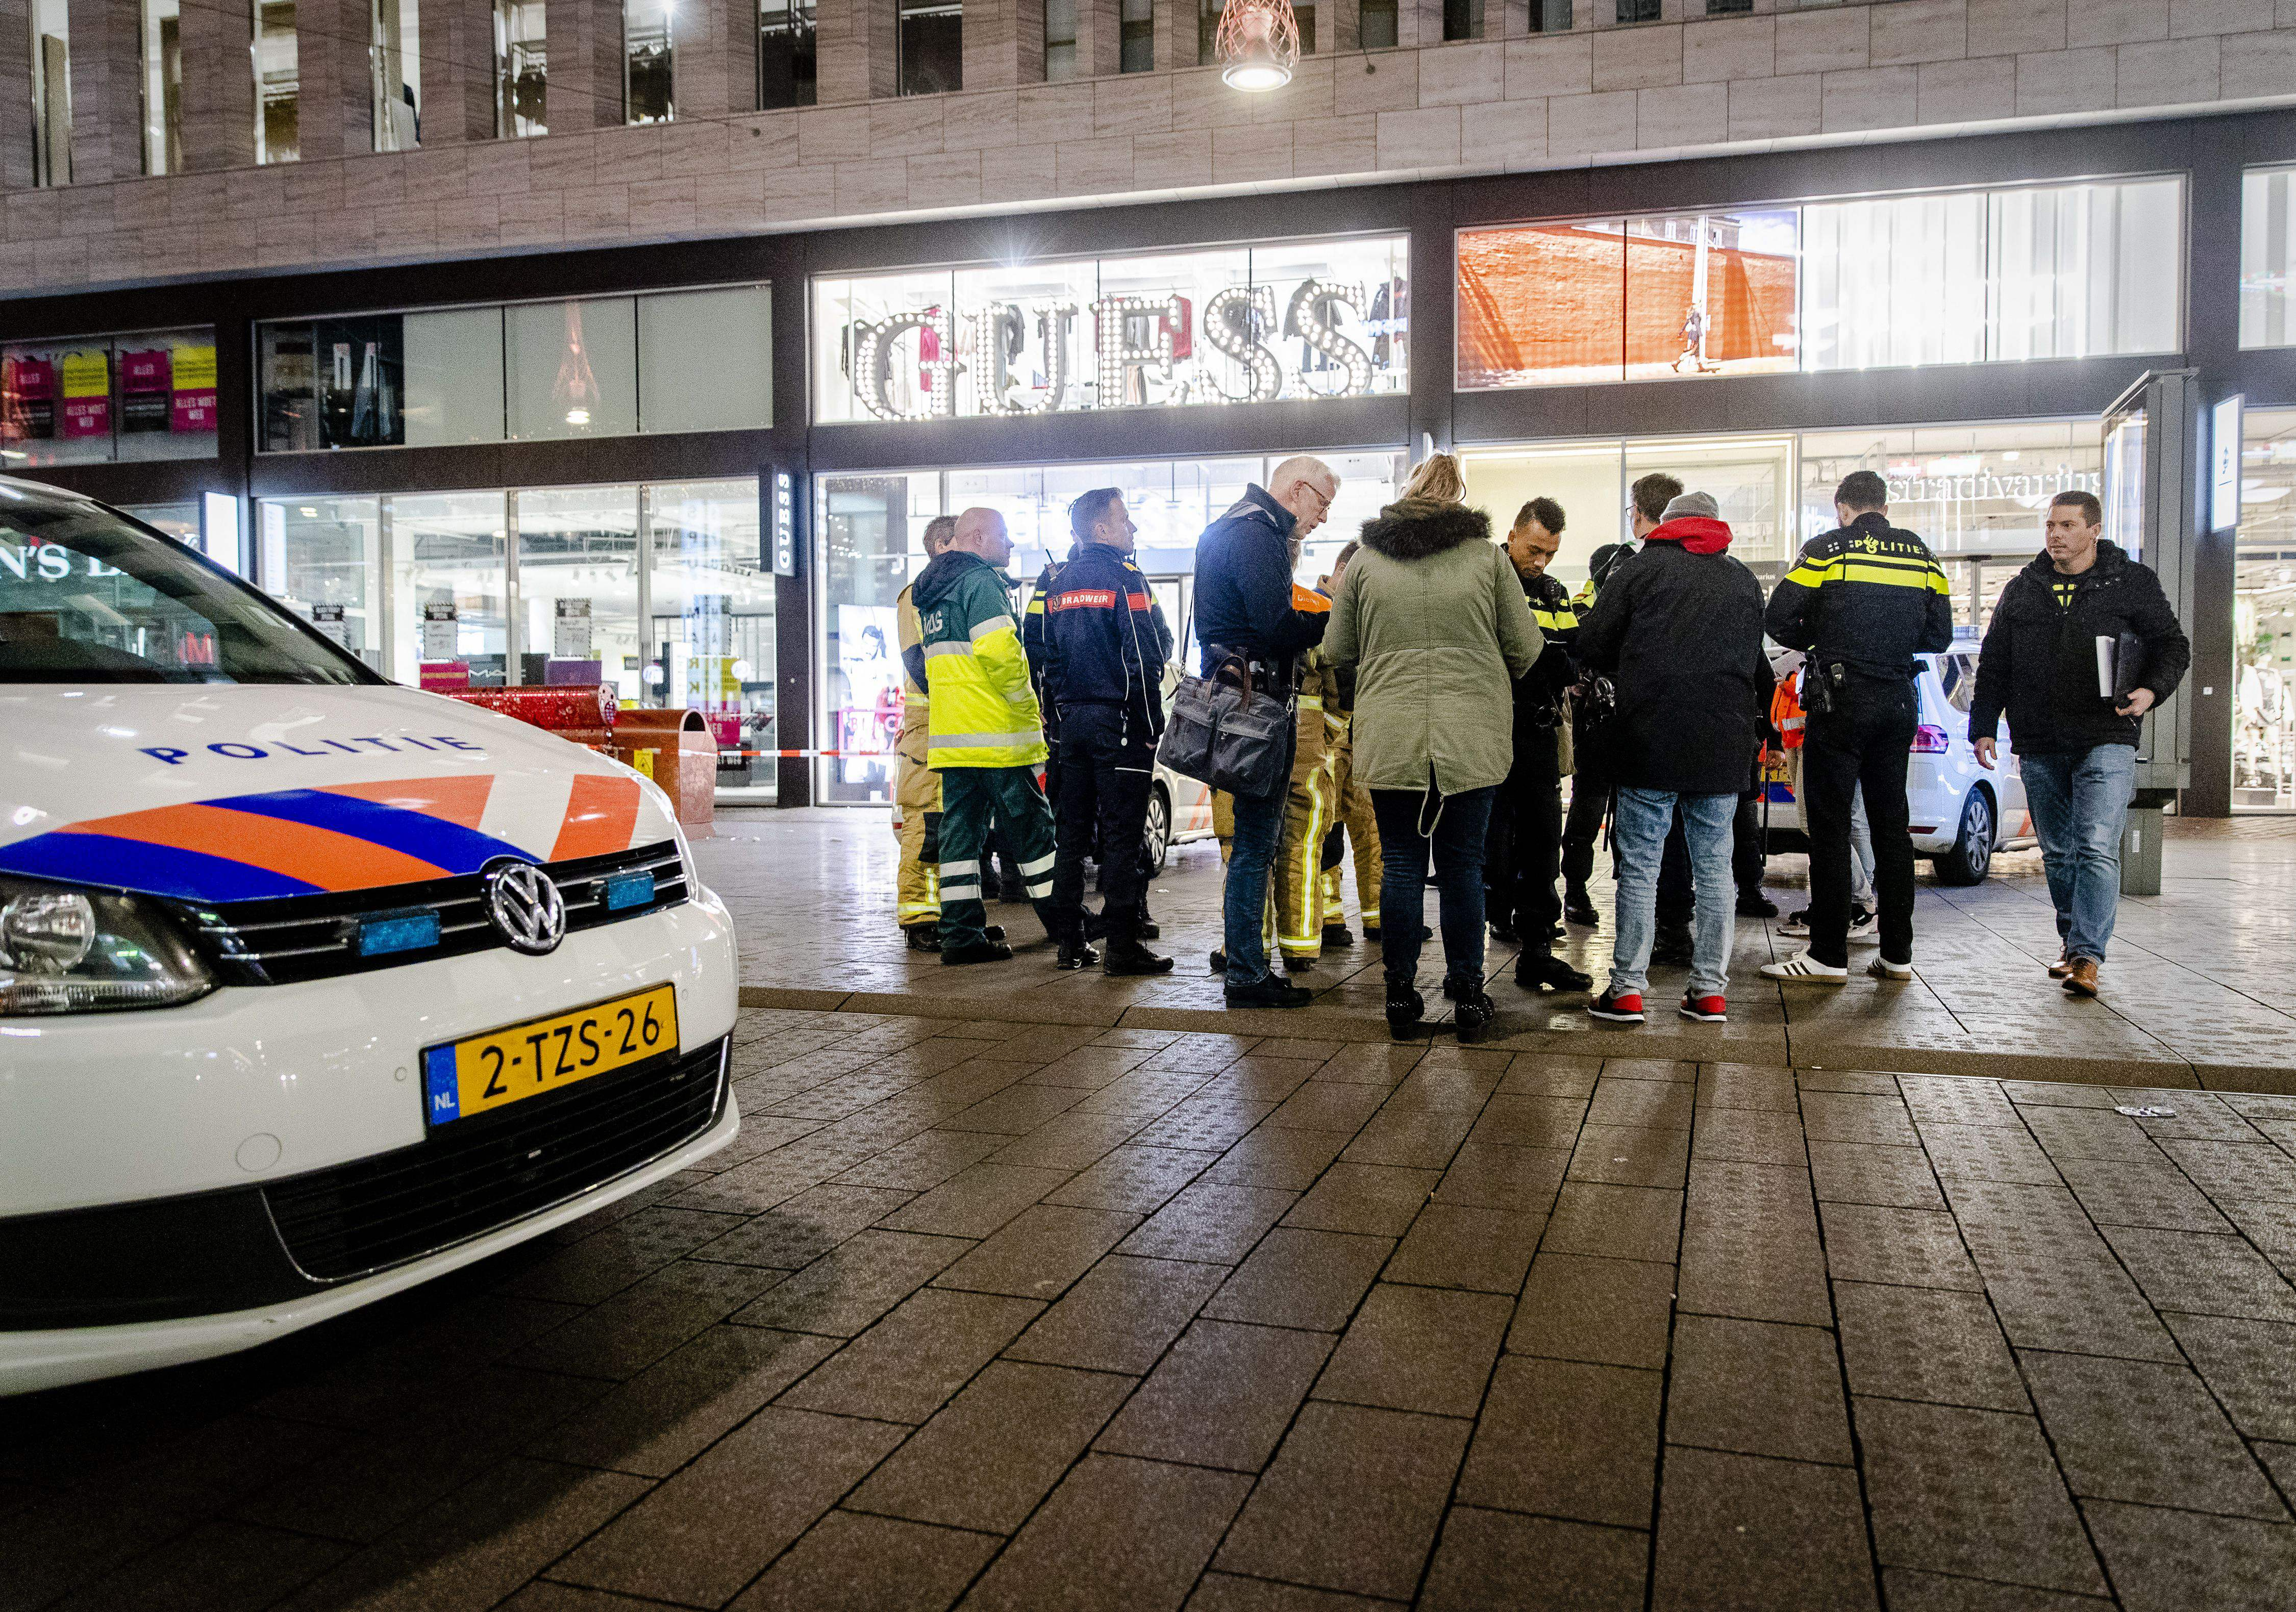 Police arrive at the Grote Marktstraat, one of the main shopping streets in the centre of the Dutch city of The Hague, after several people were wounded in a stabbing incident on November 29, 2019. (SEM VAN DER WAL/ANP/AFP via Getty Images)